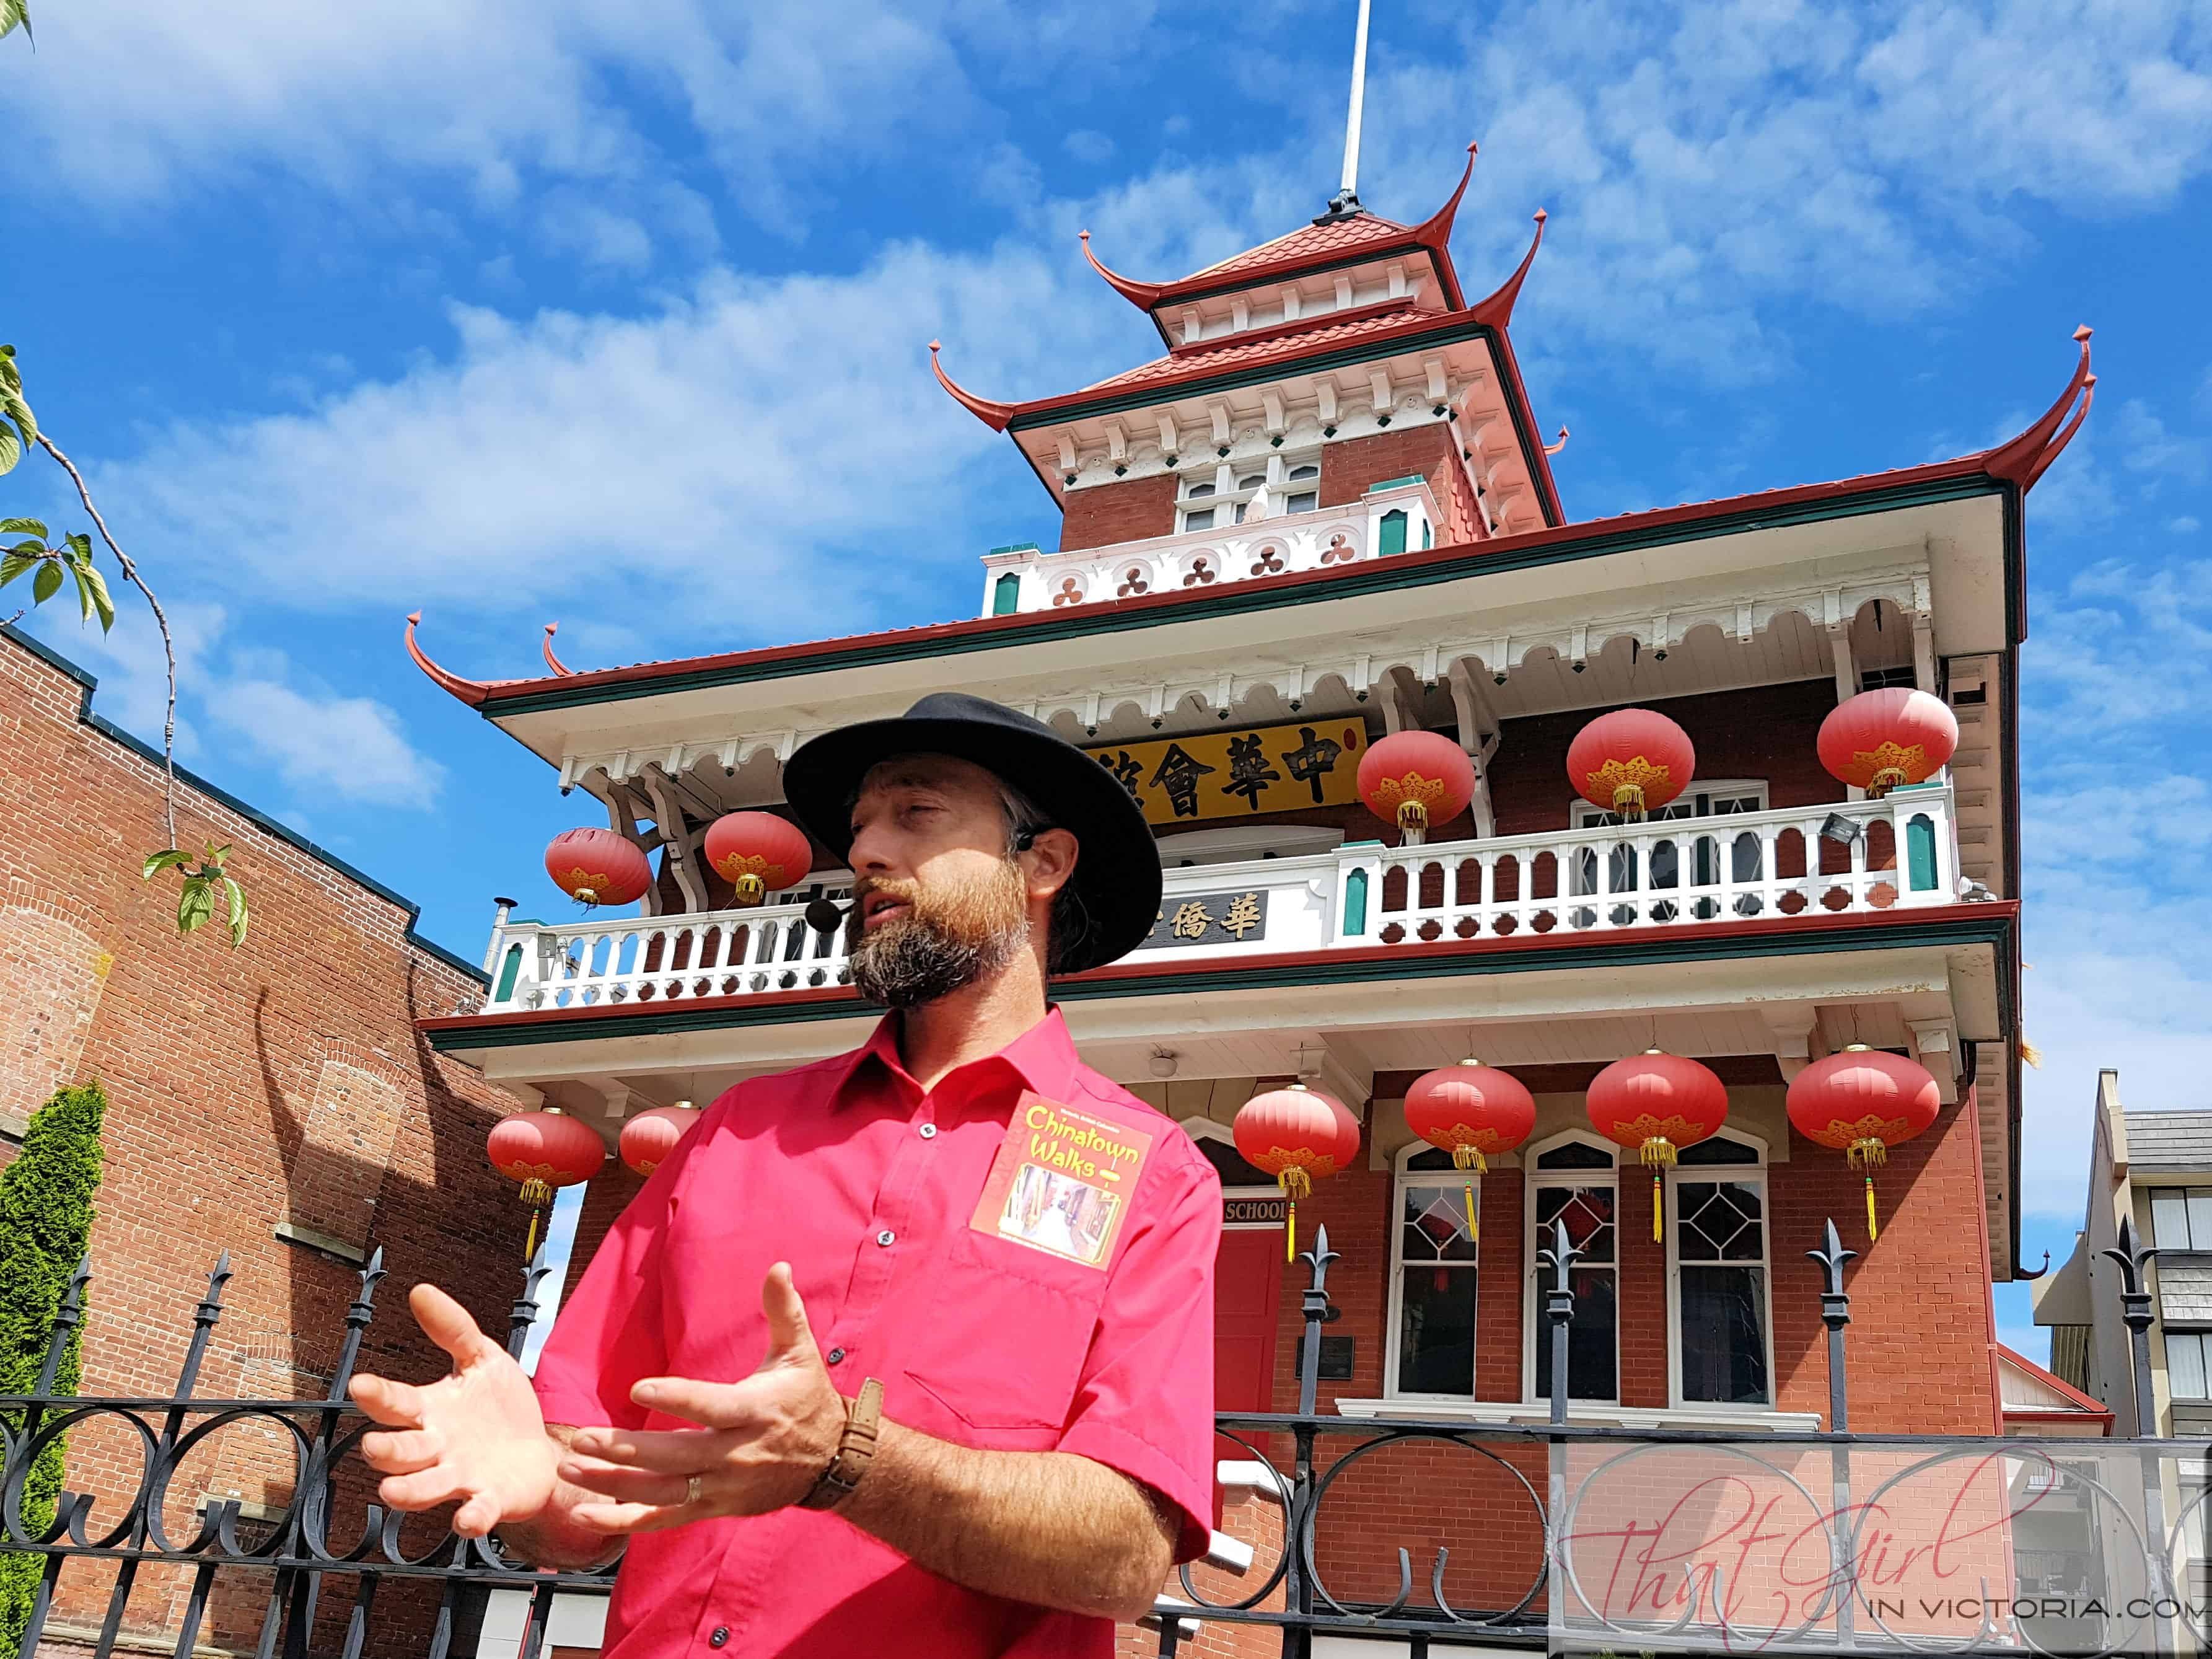 Discover-the-Past-Chinatown-Waking-Tour-Victoria-BC-That-Girl-in-Victoria (12)